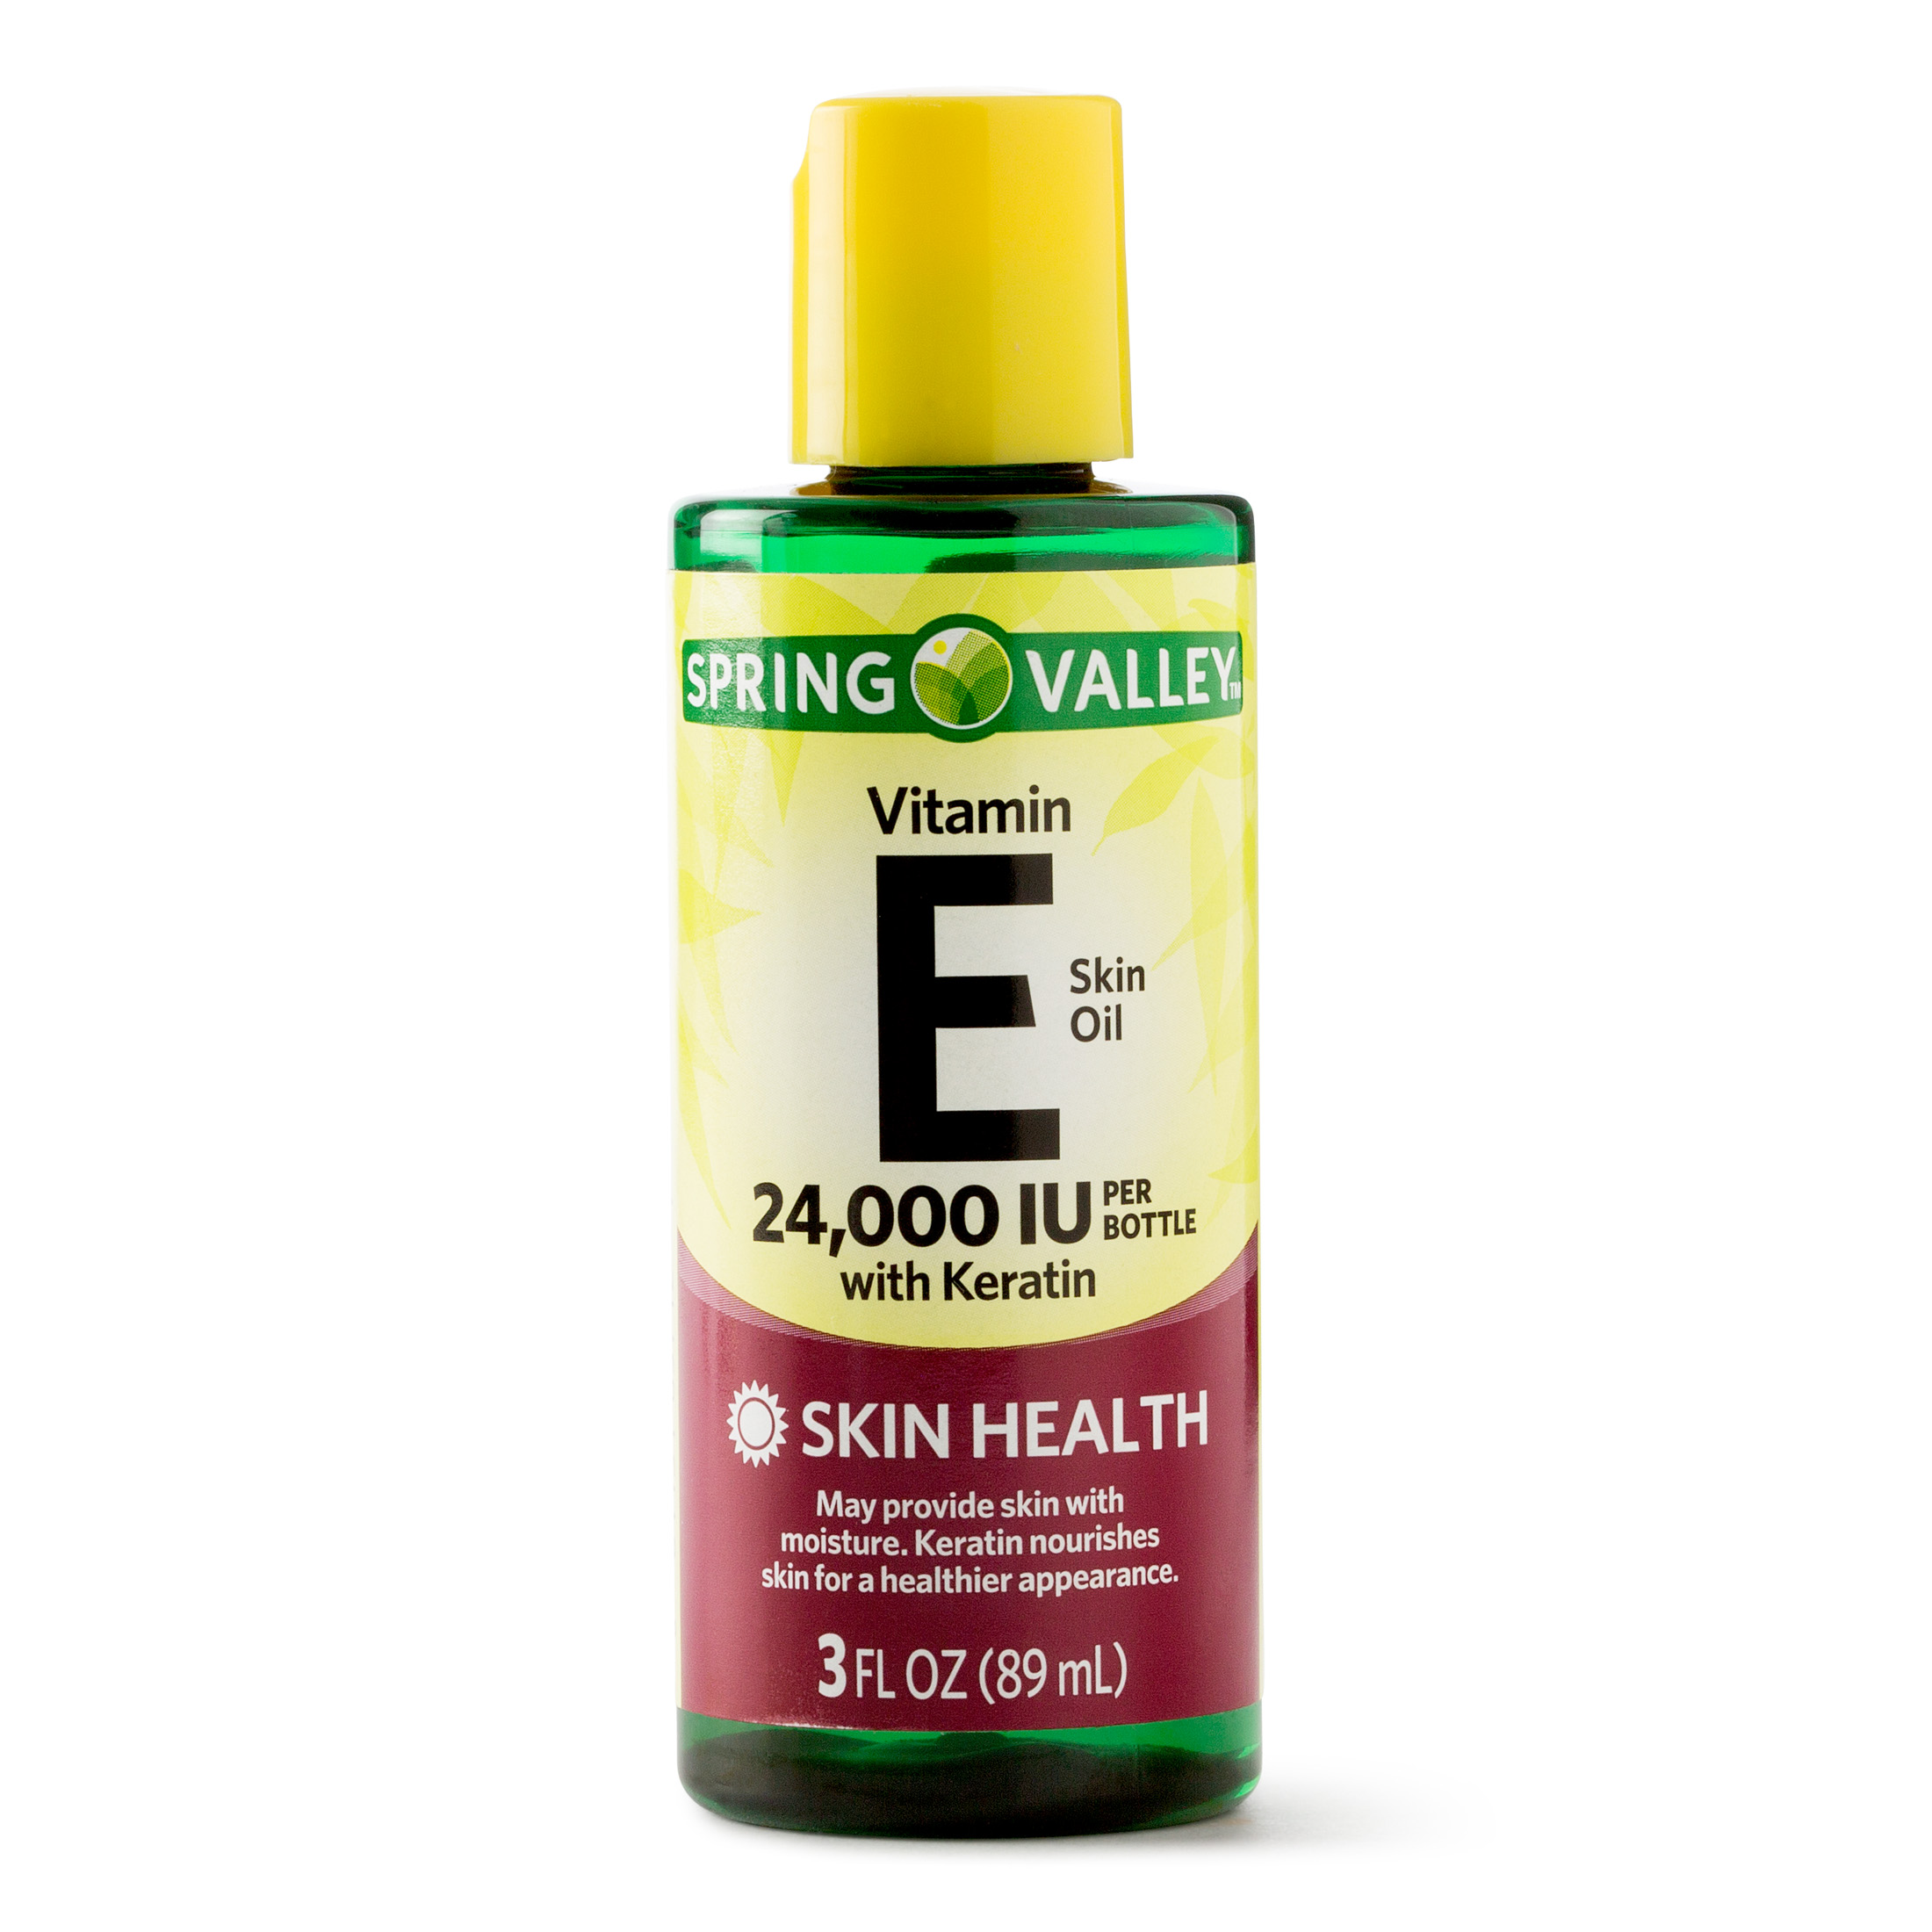 Spring Valley Vitamin E Skin Oil, 24000 IU, 3 Oz